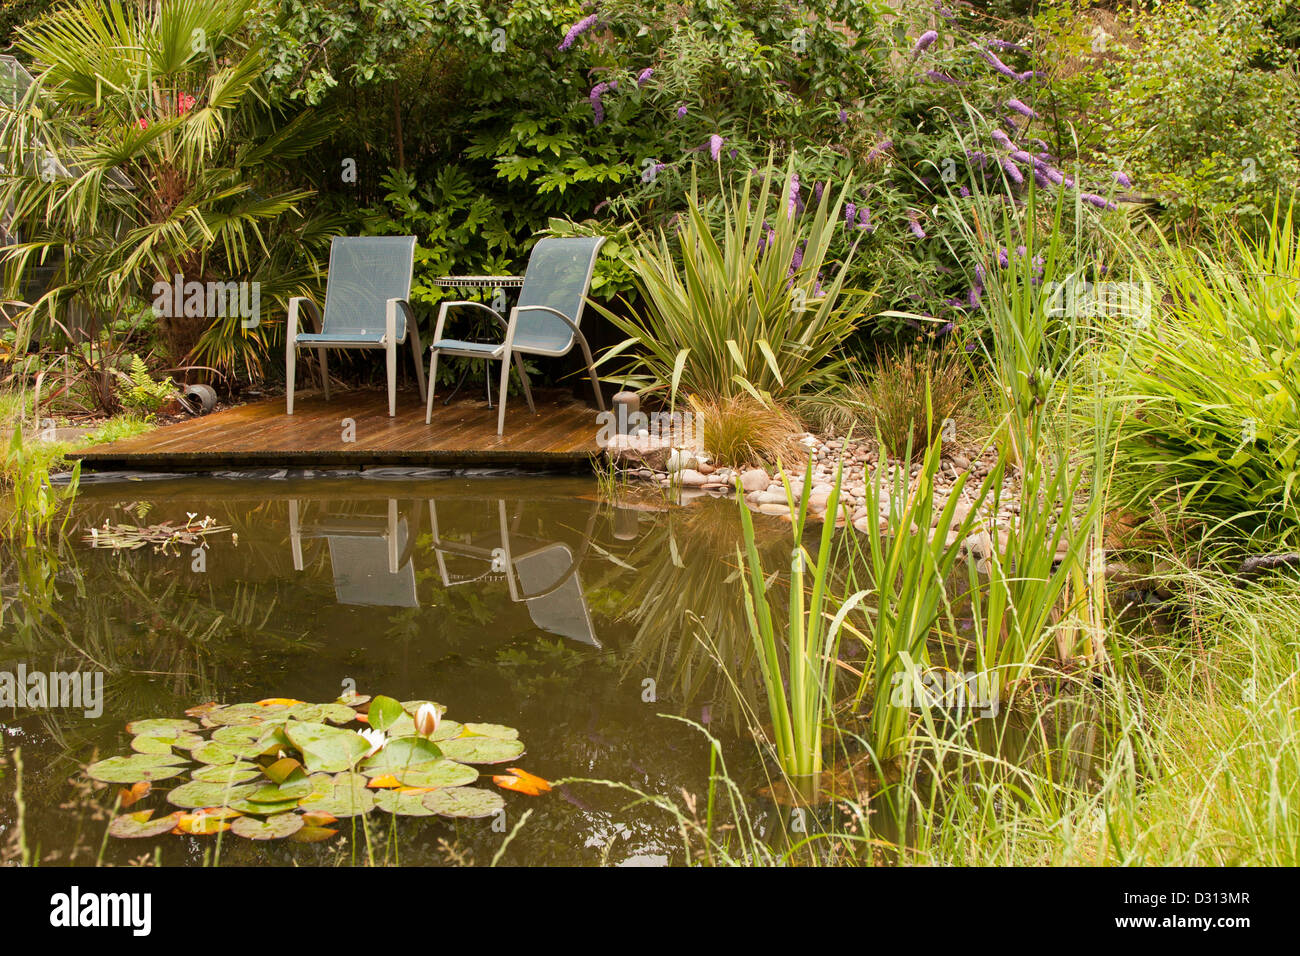 Garden seating on wooden decking overlooking wildlife for Garden ponds uk